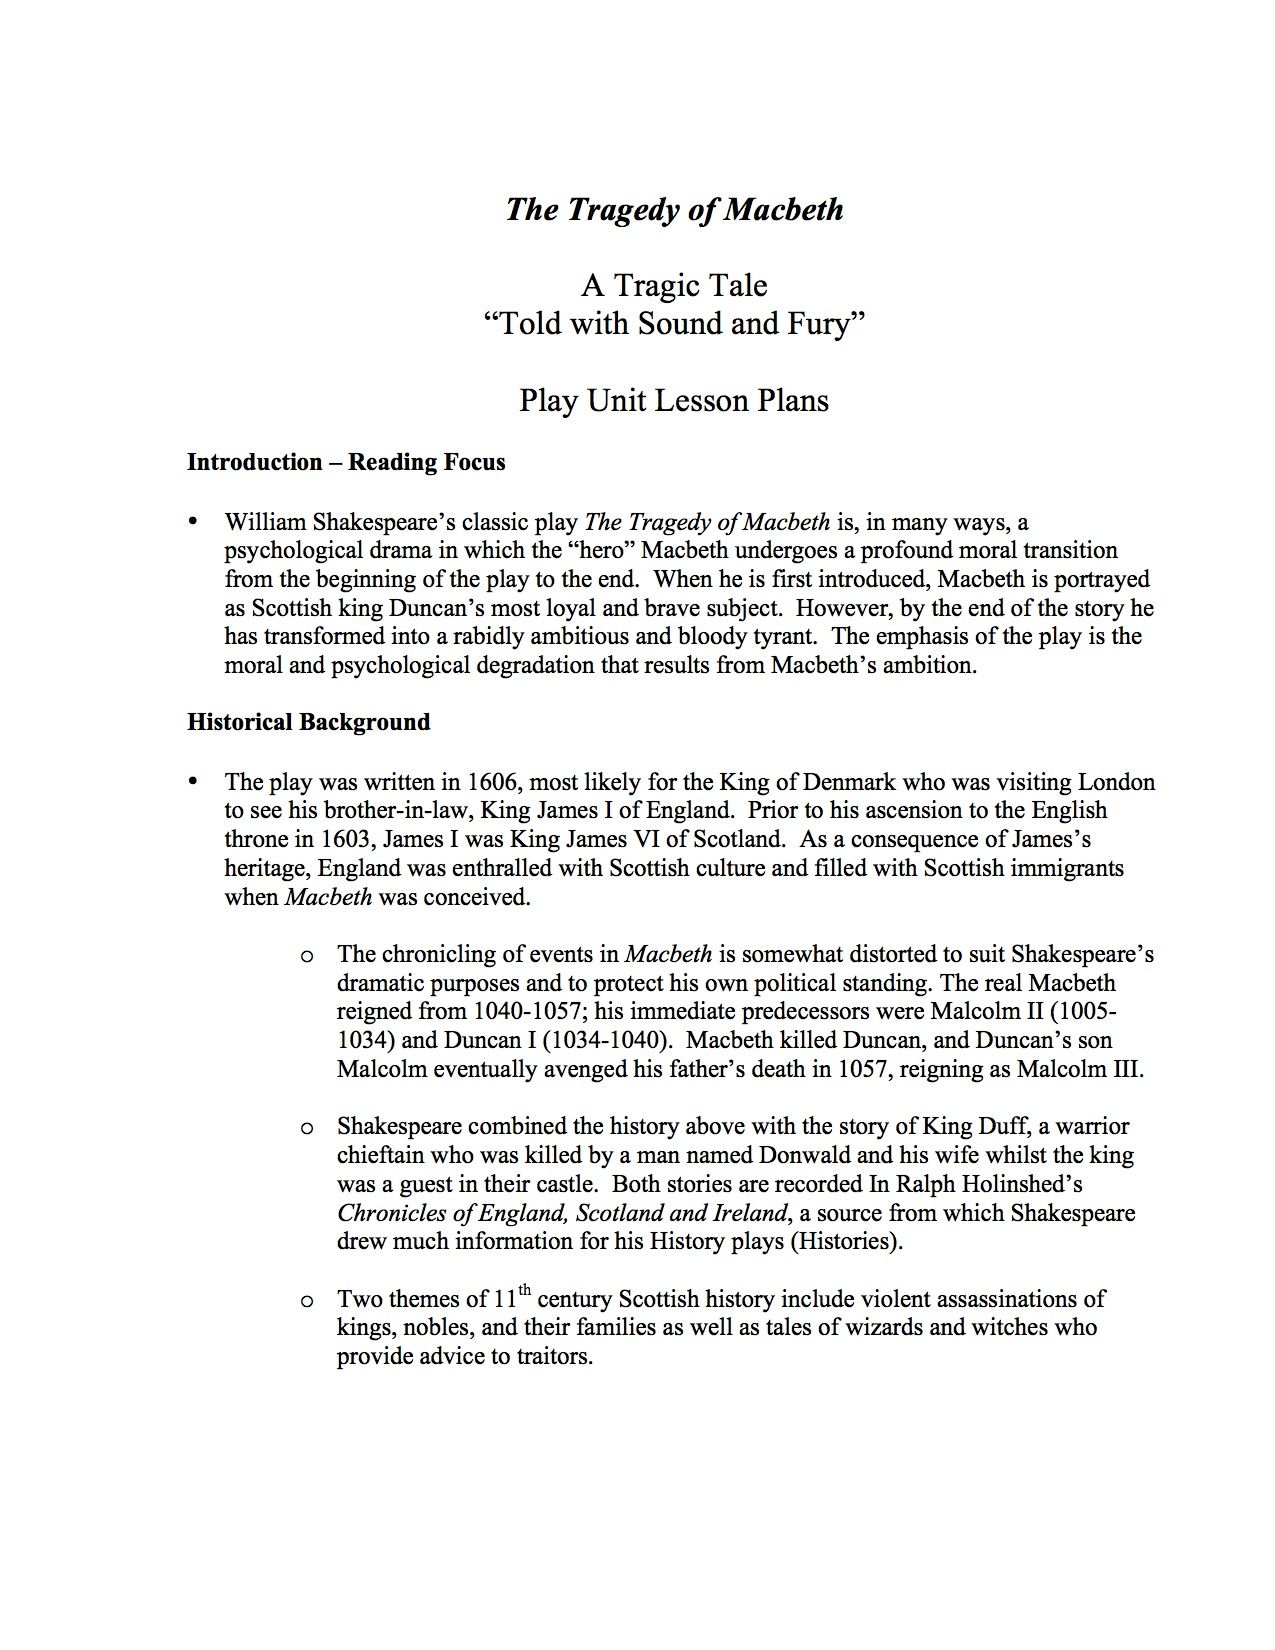 Macbeth Unit Lesson Plans - A comprehensive unit study of Shakespeare's  classic play. This 35-bundled unit contains basic information and  assessment ...